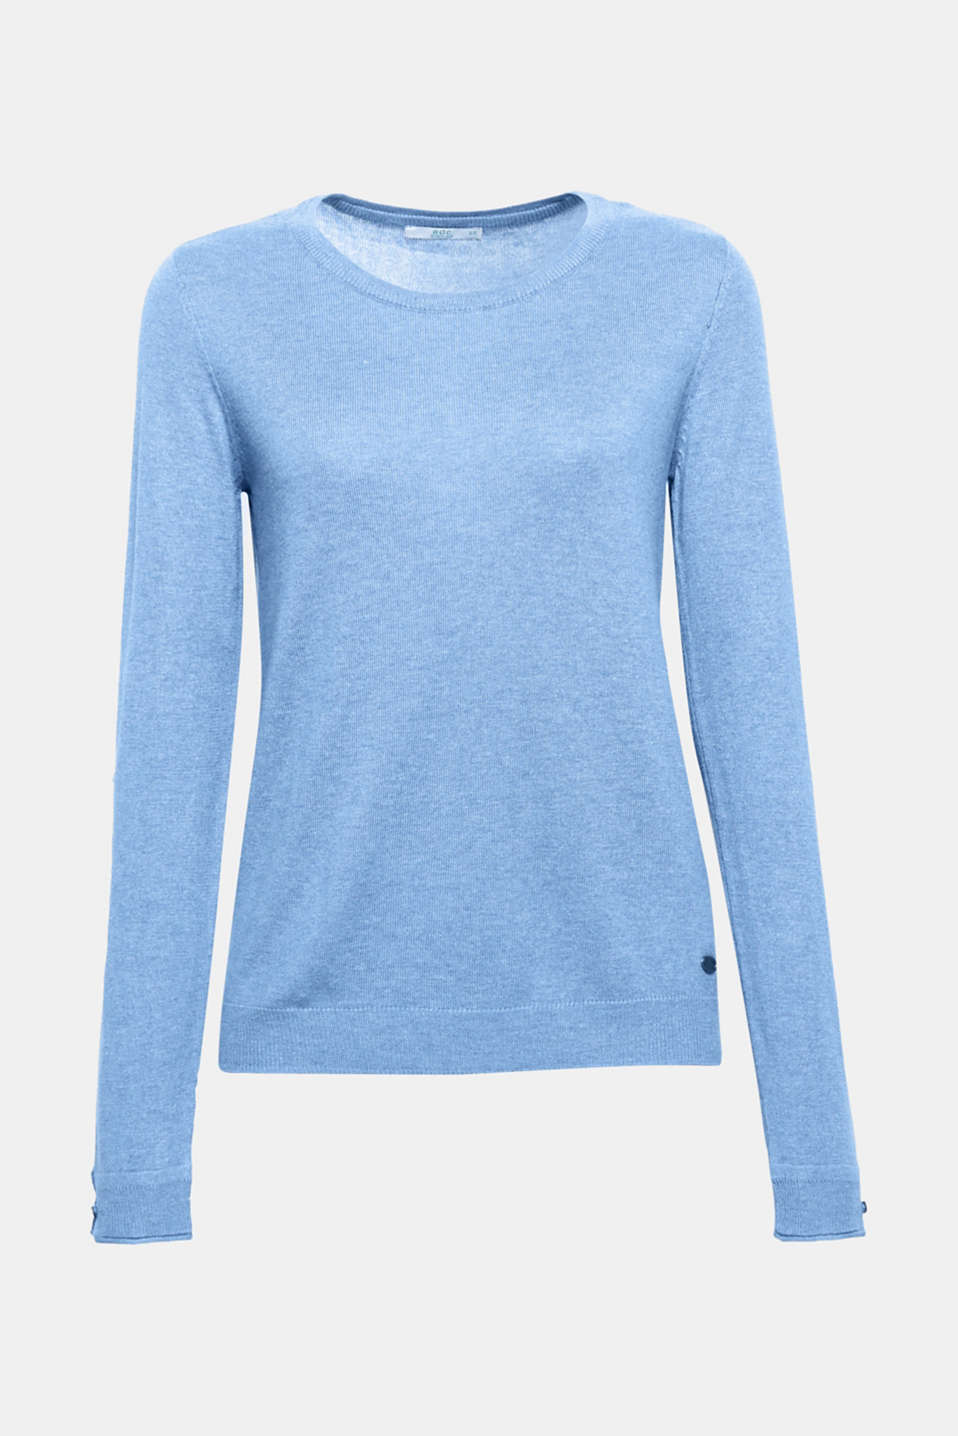 This cool, crew neck jumper containing environmentally-friendly, premium organic cotton is an indispensable basic.